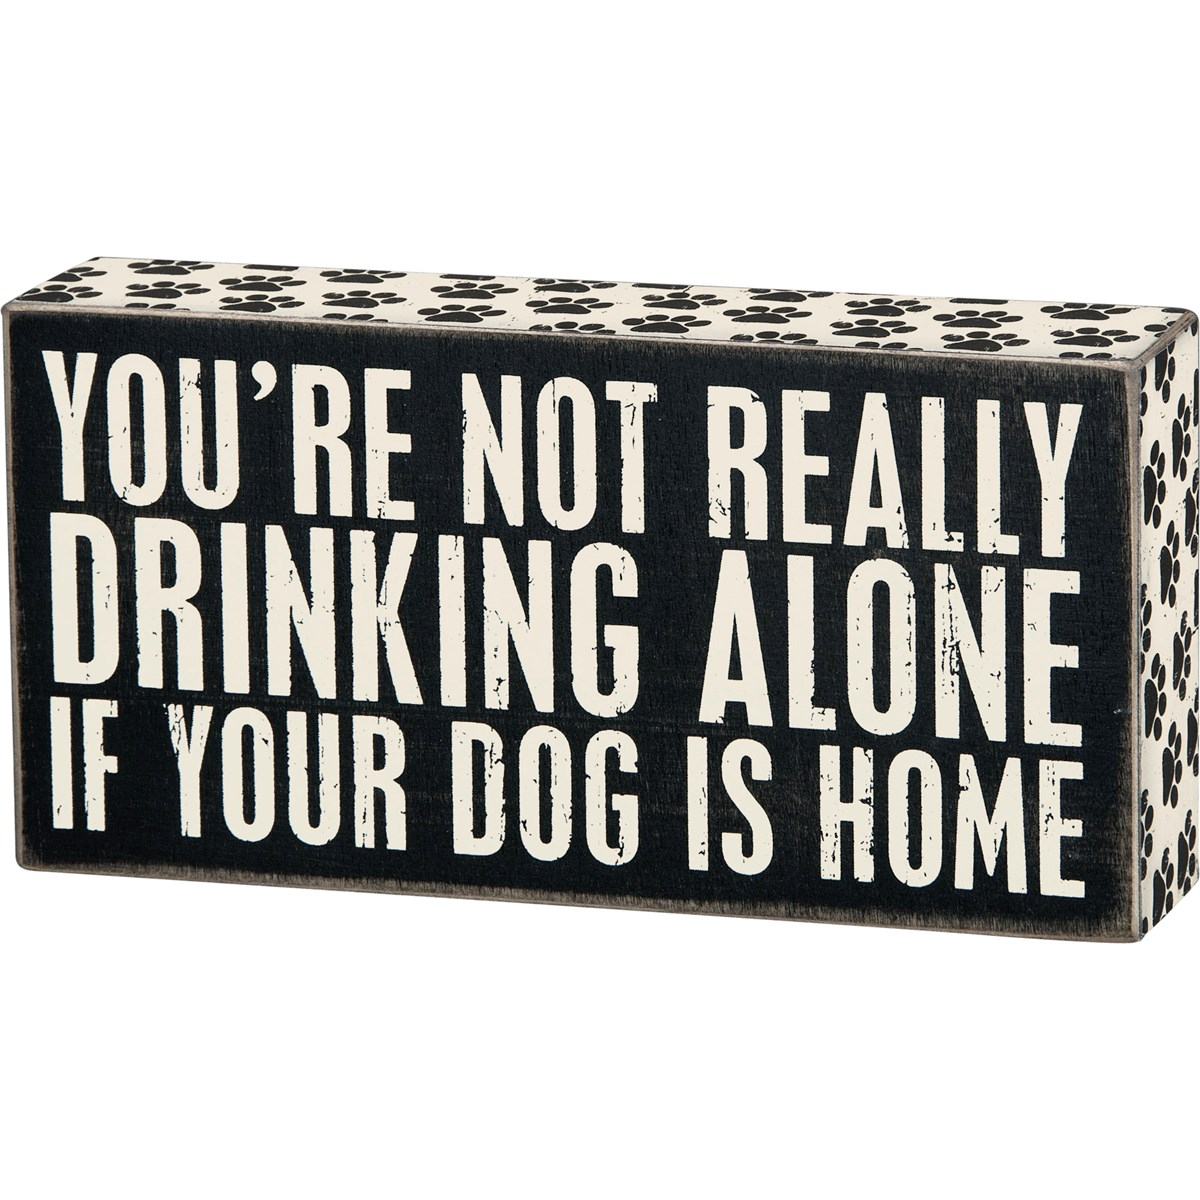 "Box Sign - Drinking Alone - 8"" x 4"" x 1.75"" - Wood, Paper"